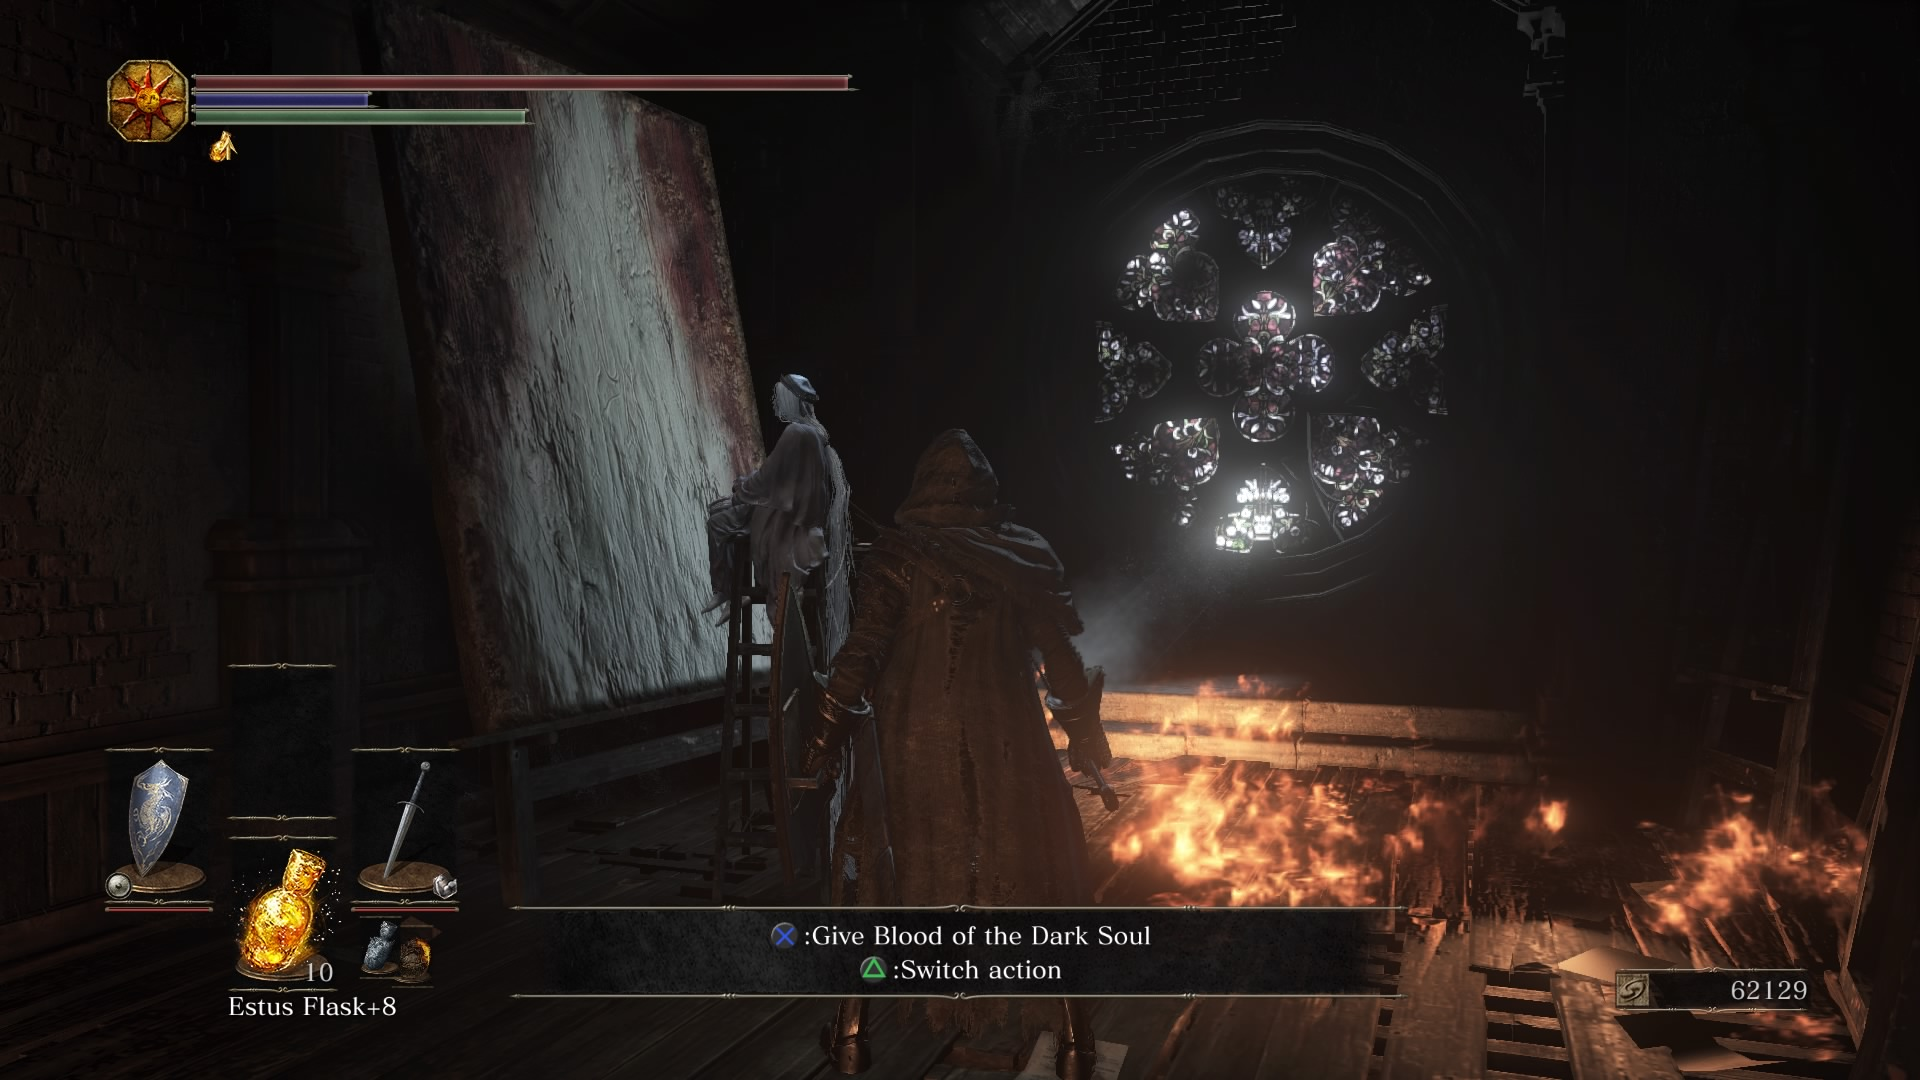 Dark souls 3 the ringed city full walkthrough the ringed city the mausoleum lookout bonfire is found on a high wall of the ringed city use the stone markers to hide from the ghostly retinue of knights that appear biocorpaavc Gallery